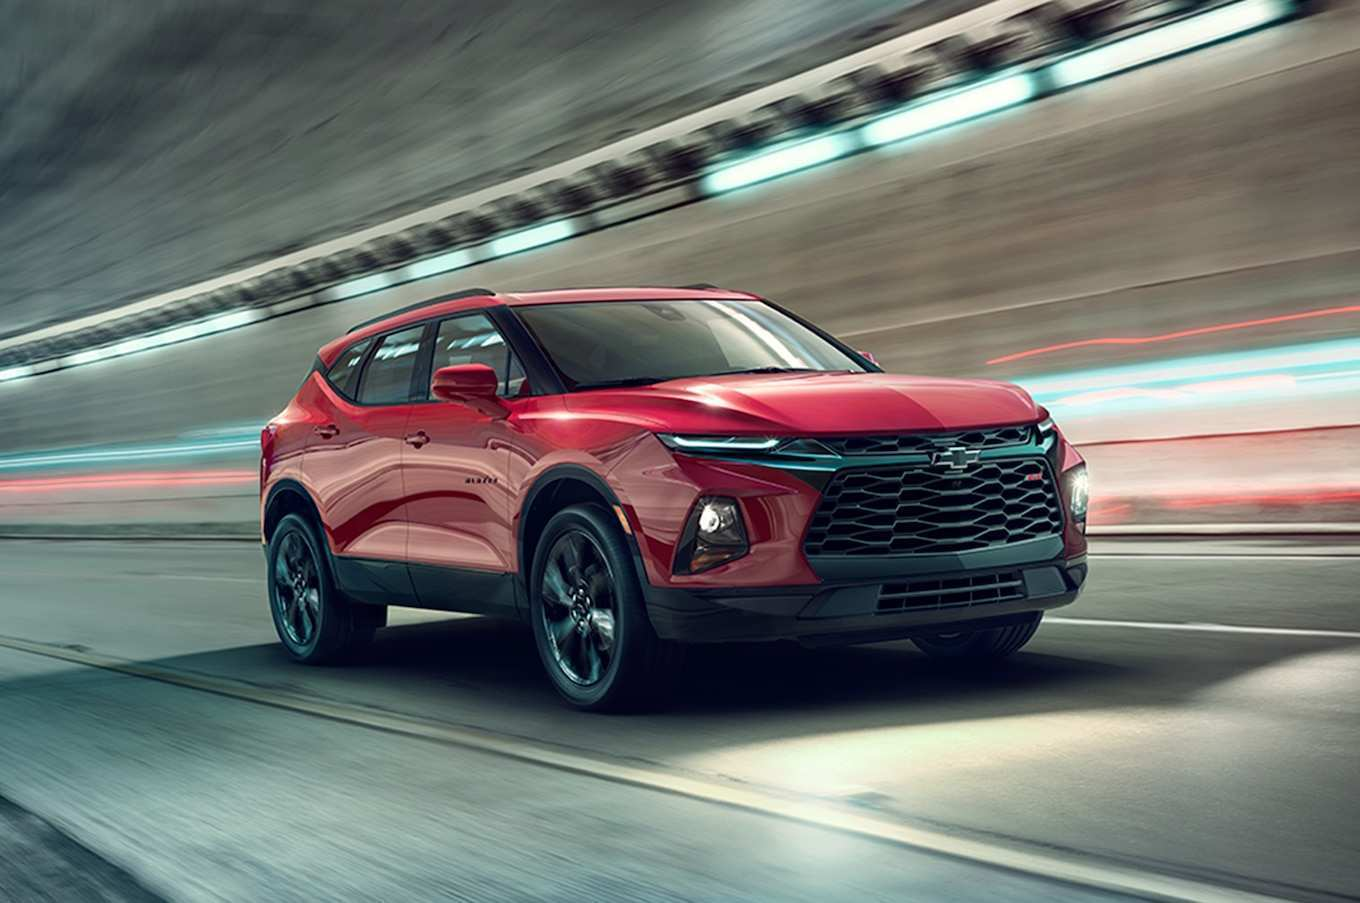 37 Gallery of New Chevrolet 2019 Tahoe Concept Engine with New Chevrolet 2019 Tahoe Concept